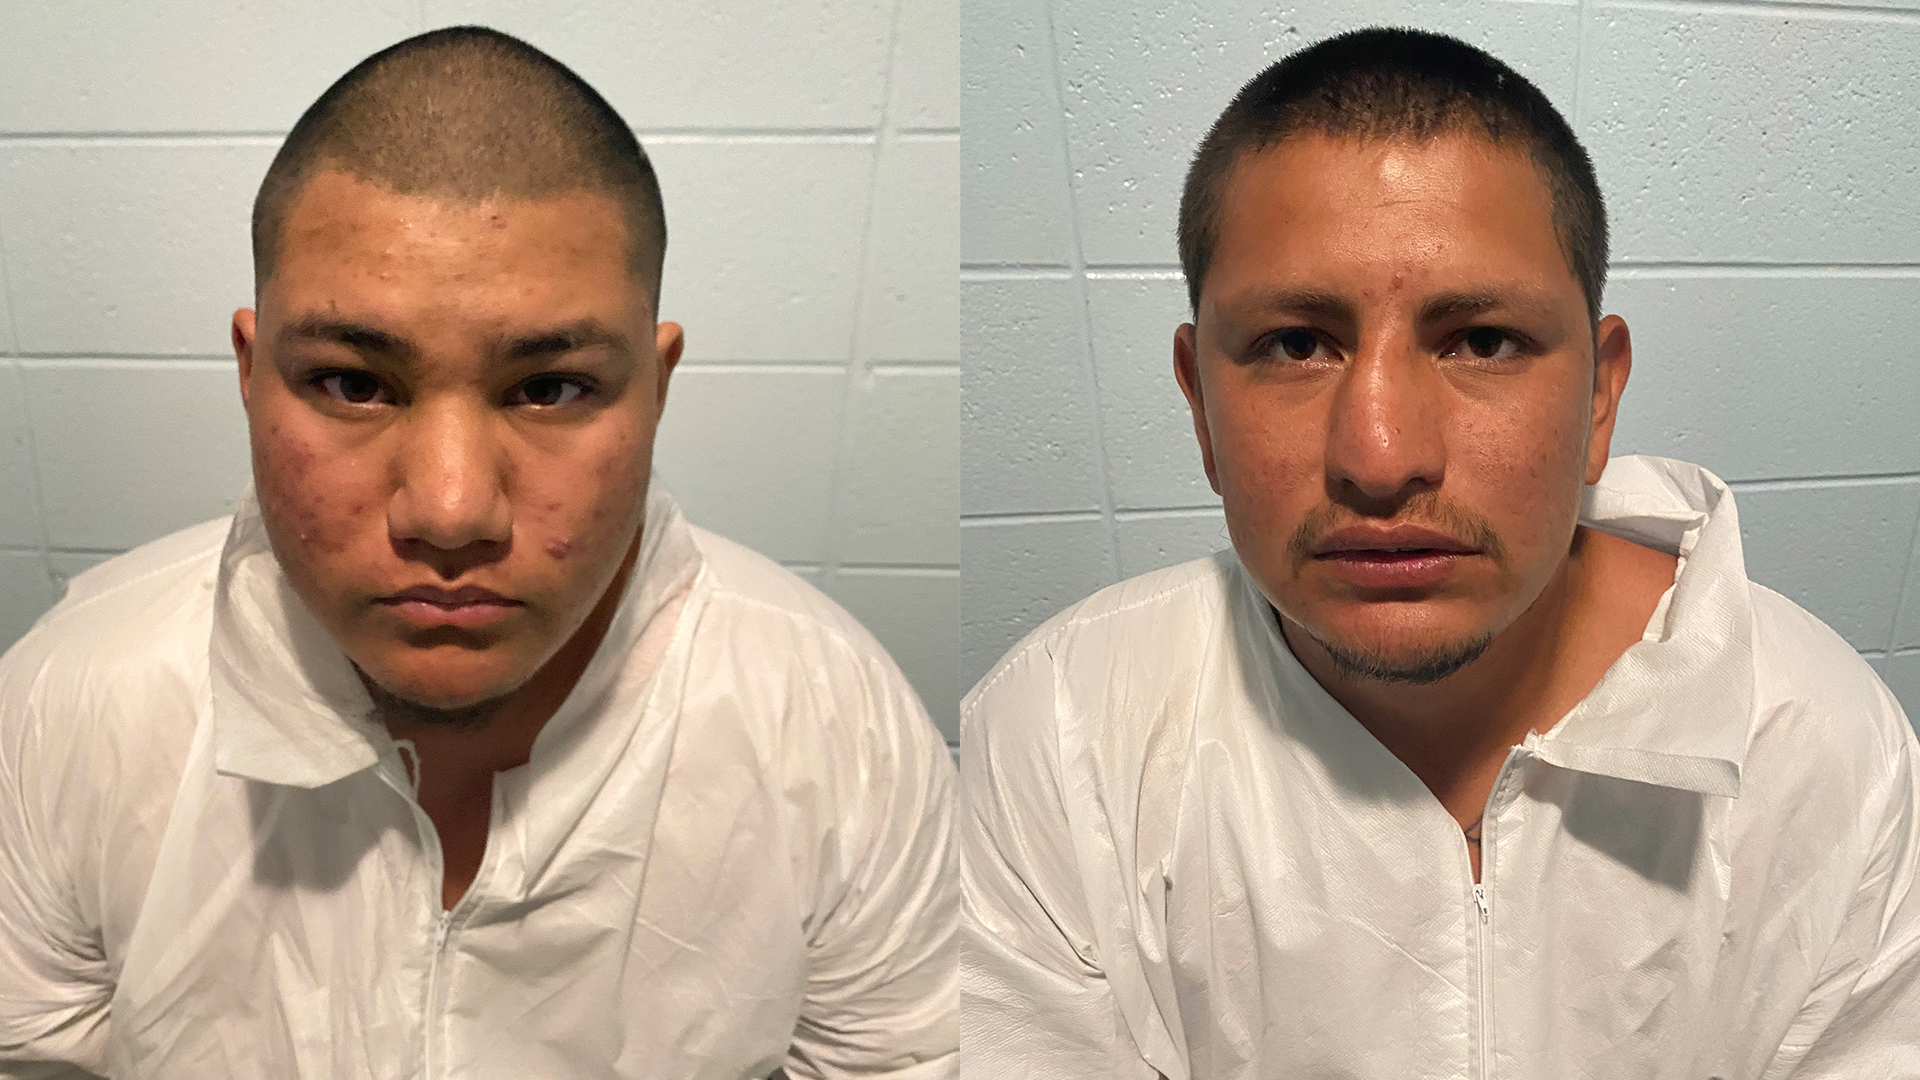 2 arrested after shooting at cops in Sanger, police say